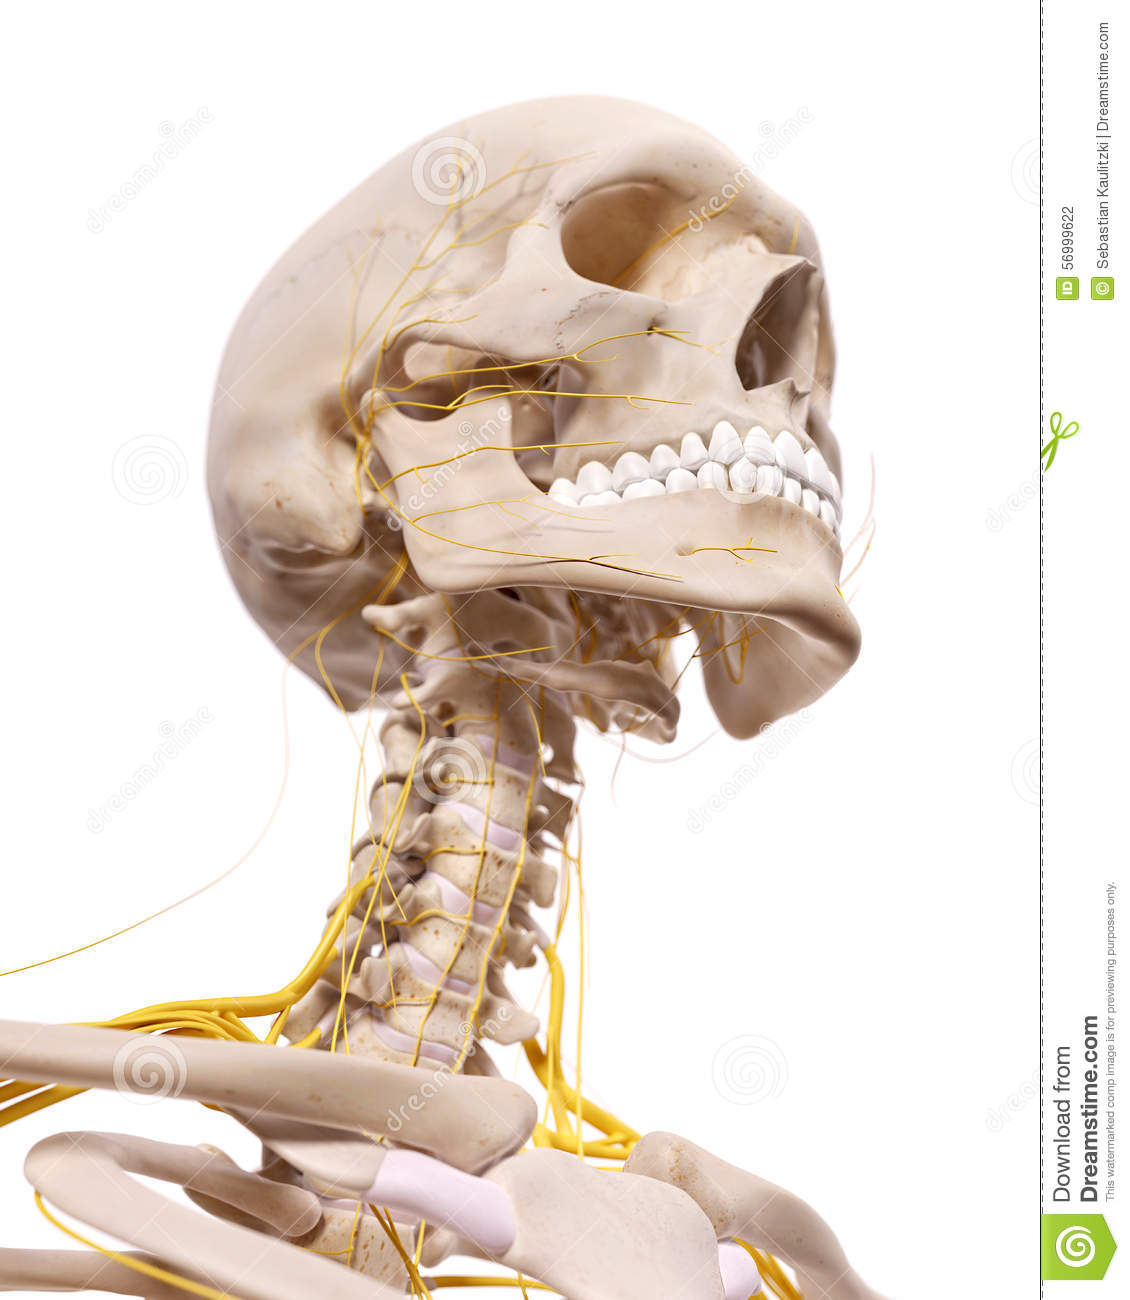 The cervical nerves stock illustration. Illustration of spinal ...